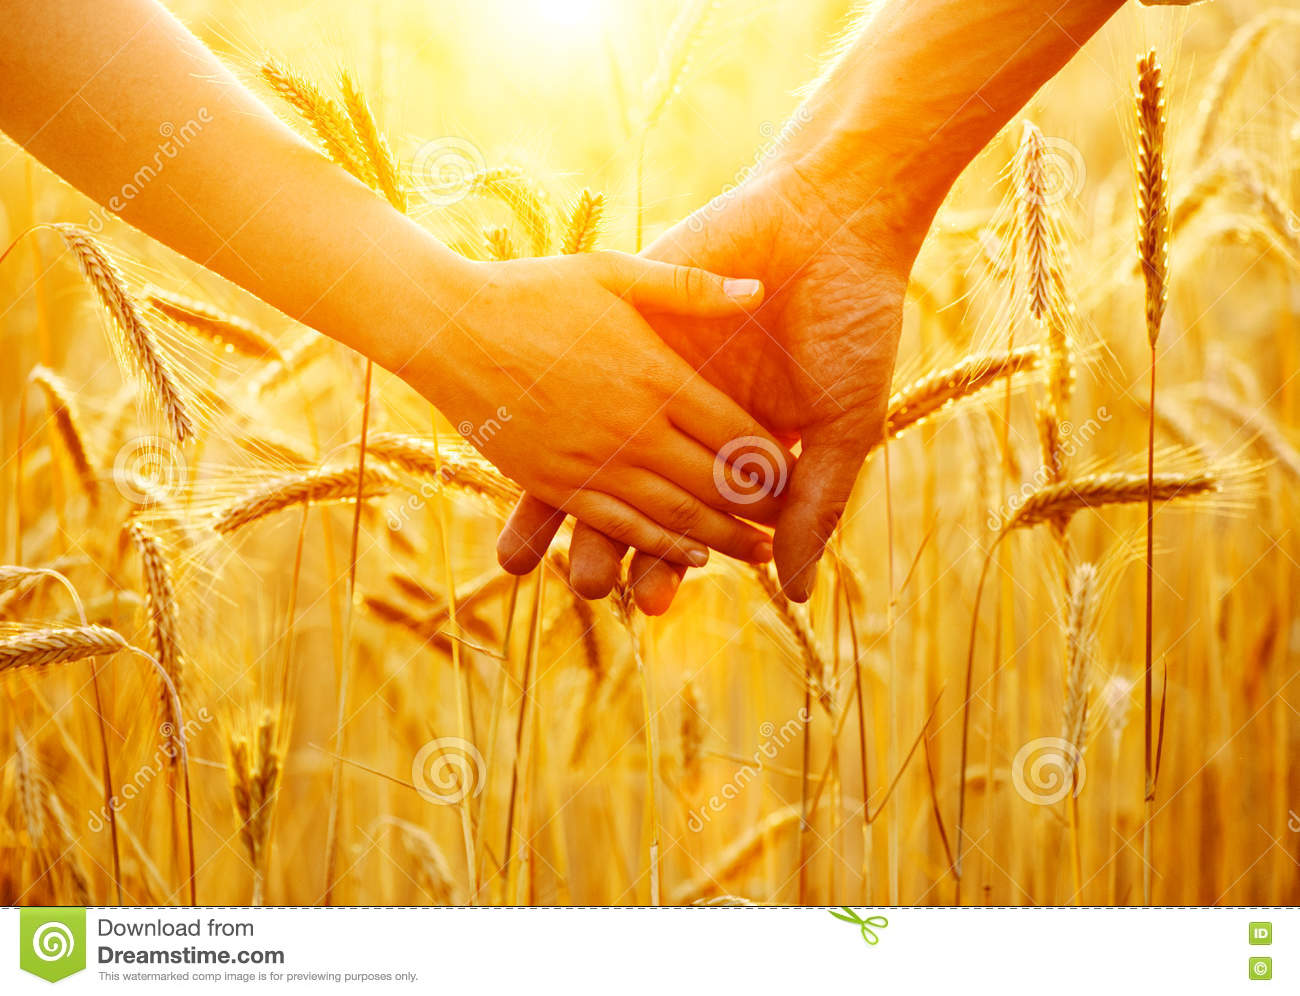 Couple holding hands and walking on golden wheat field